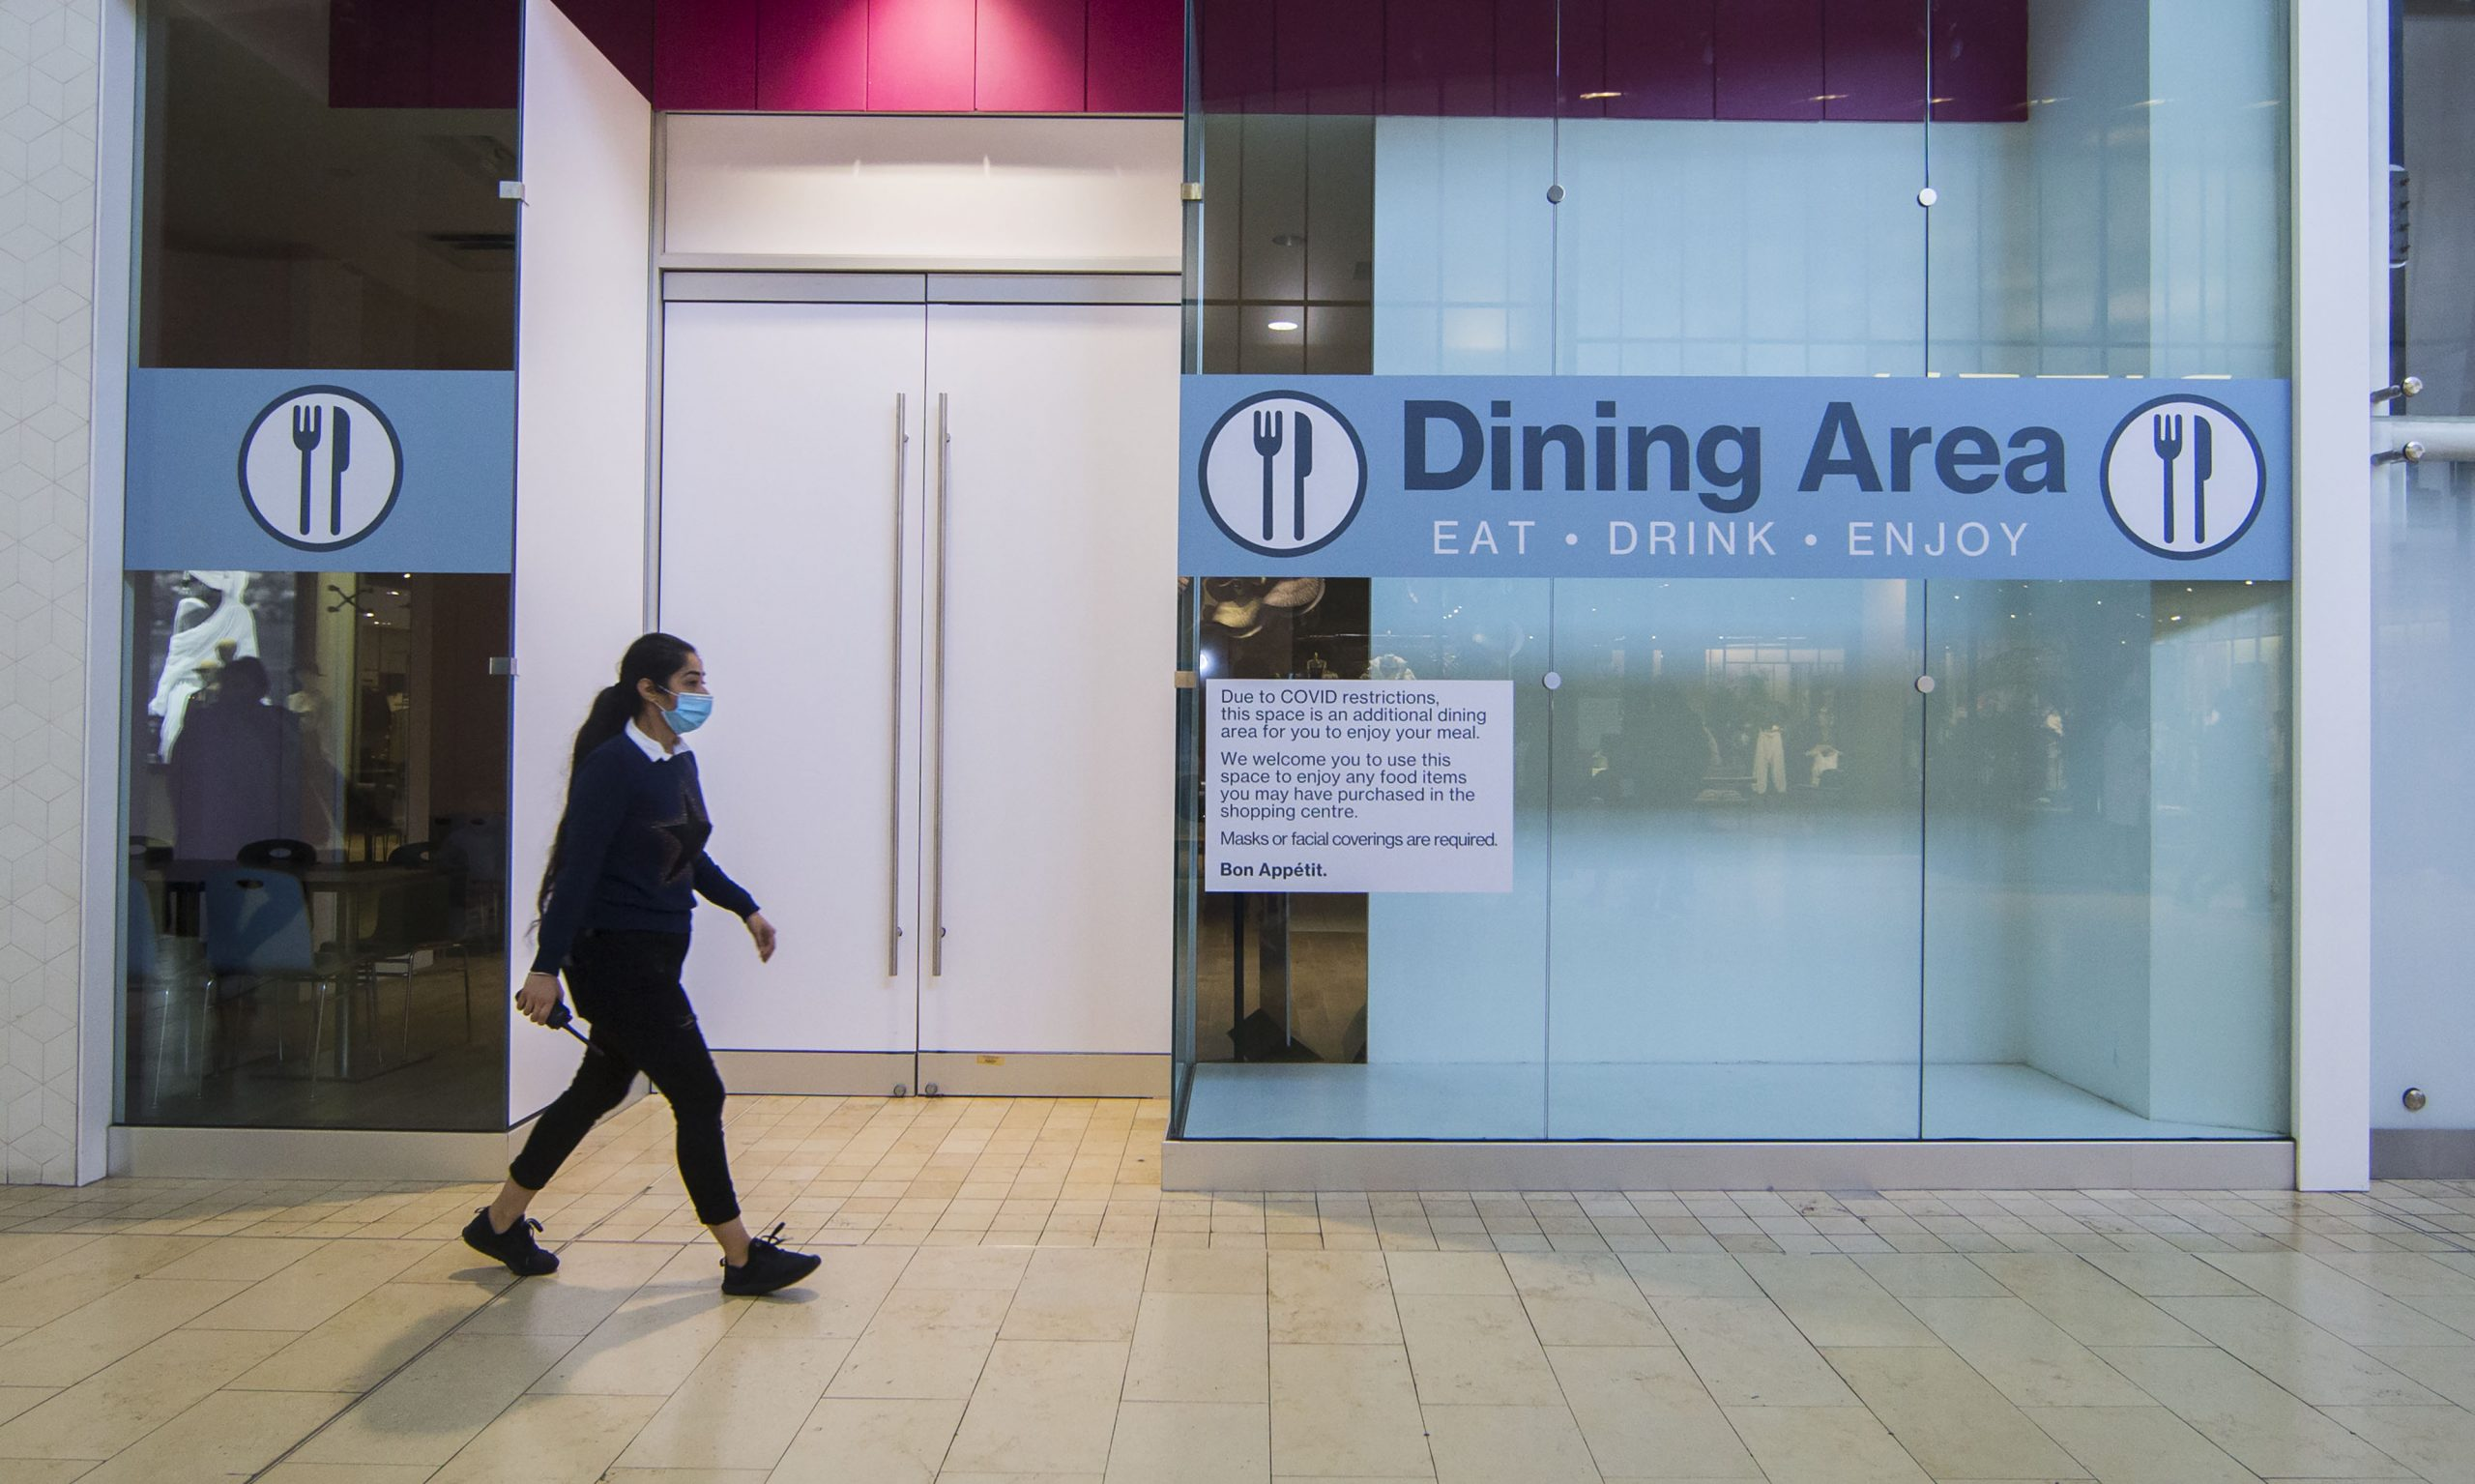 Toronto Orders Strict Covid 19 Safety Measures Prohibits Indoor Dining Amid Surge In Positivity Rate 680 News